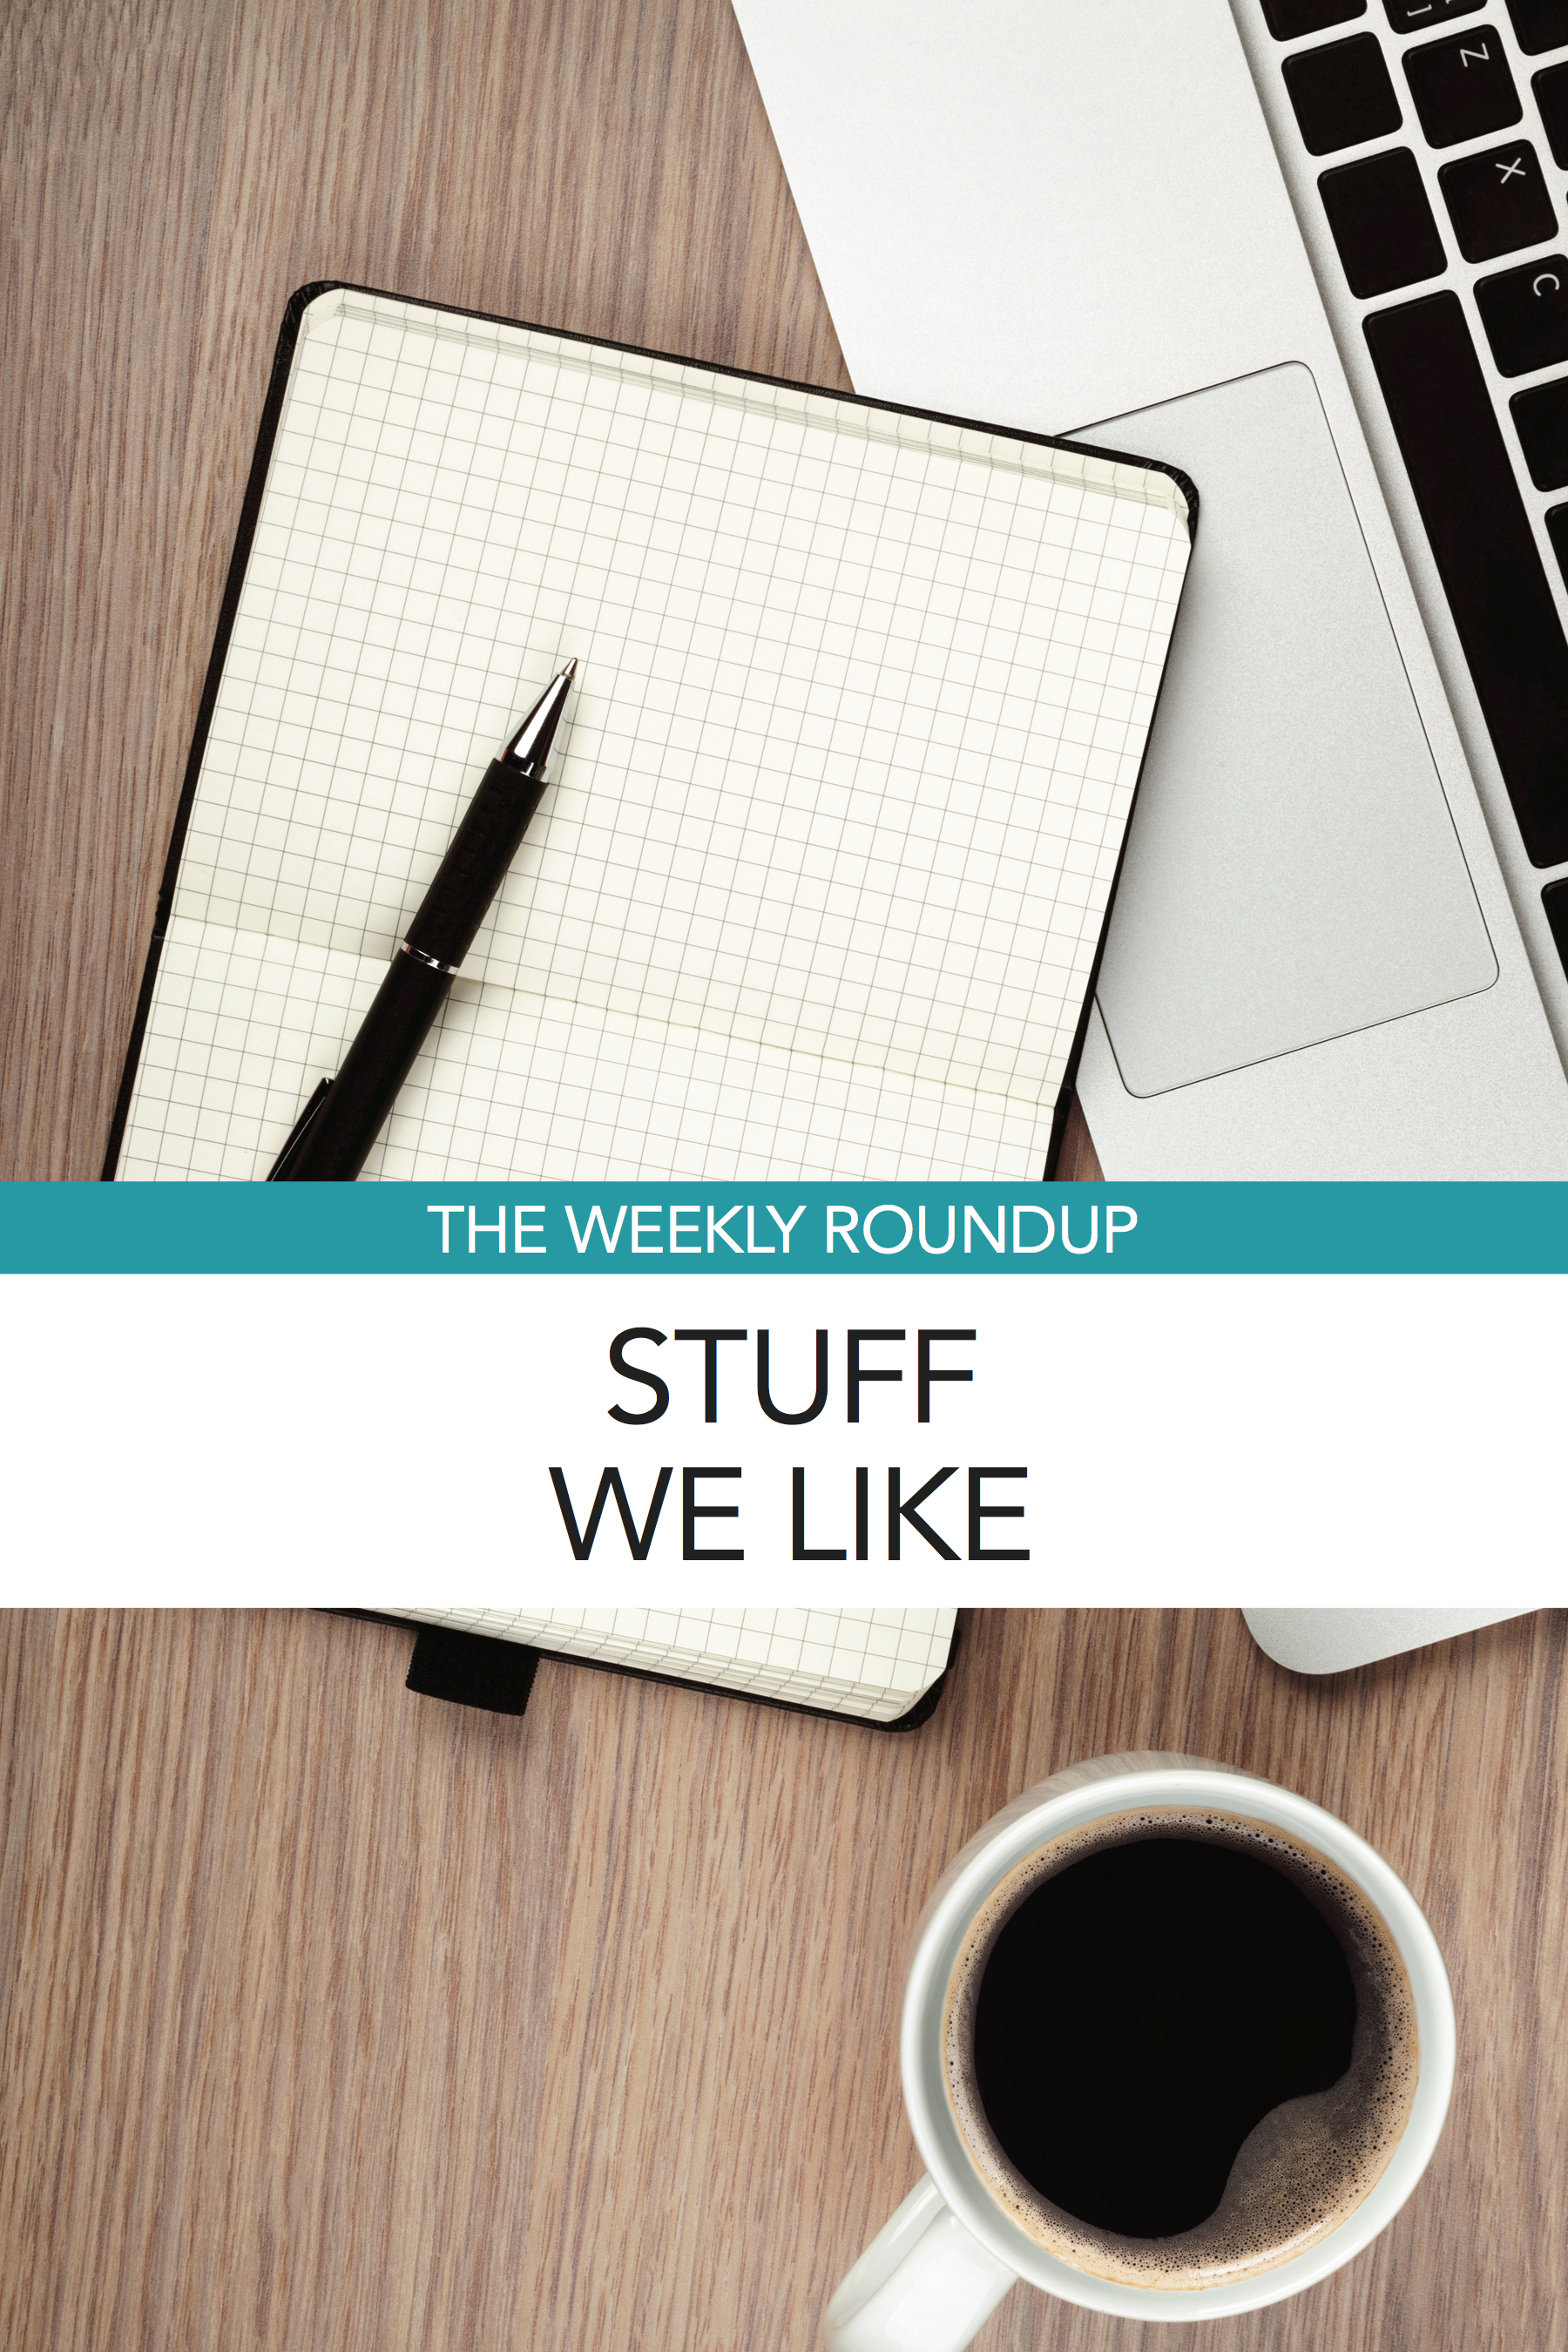 home school life's Friday roundup of the best homeschool links, reads, tools, and other fun stuff has lots of ideas and resources.